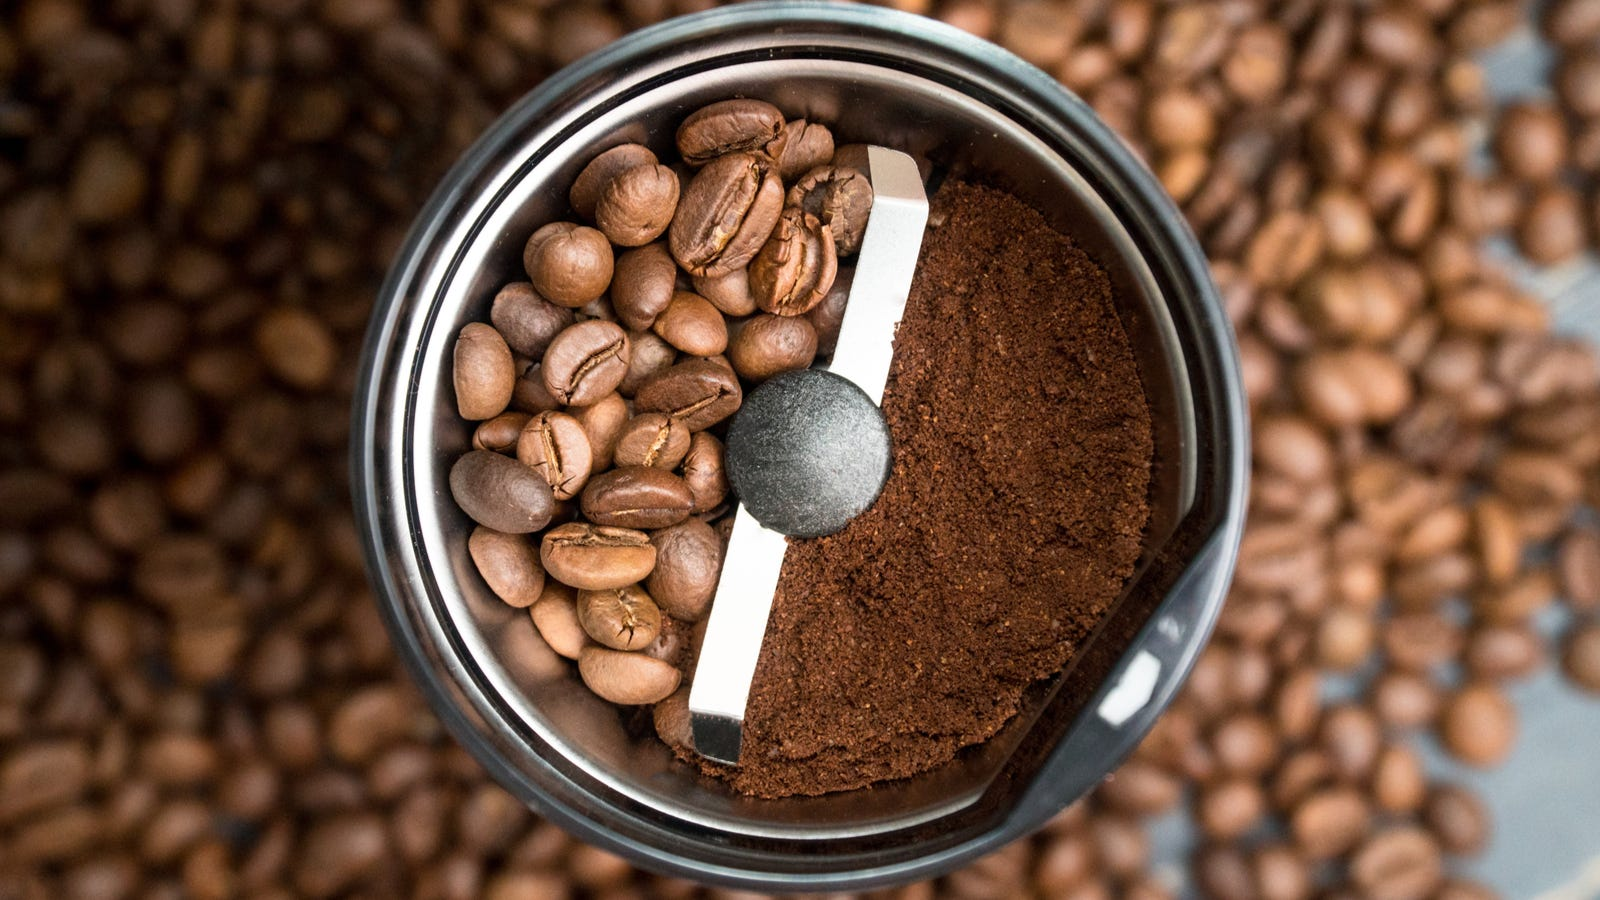 A blade coffee grinder half filled with beans, and the other half filled with ground coffee with a lot of coffee beans in the background.